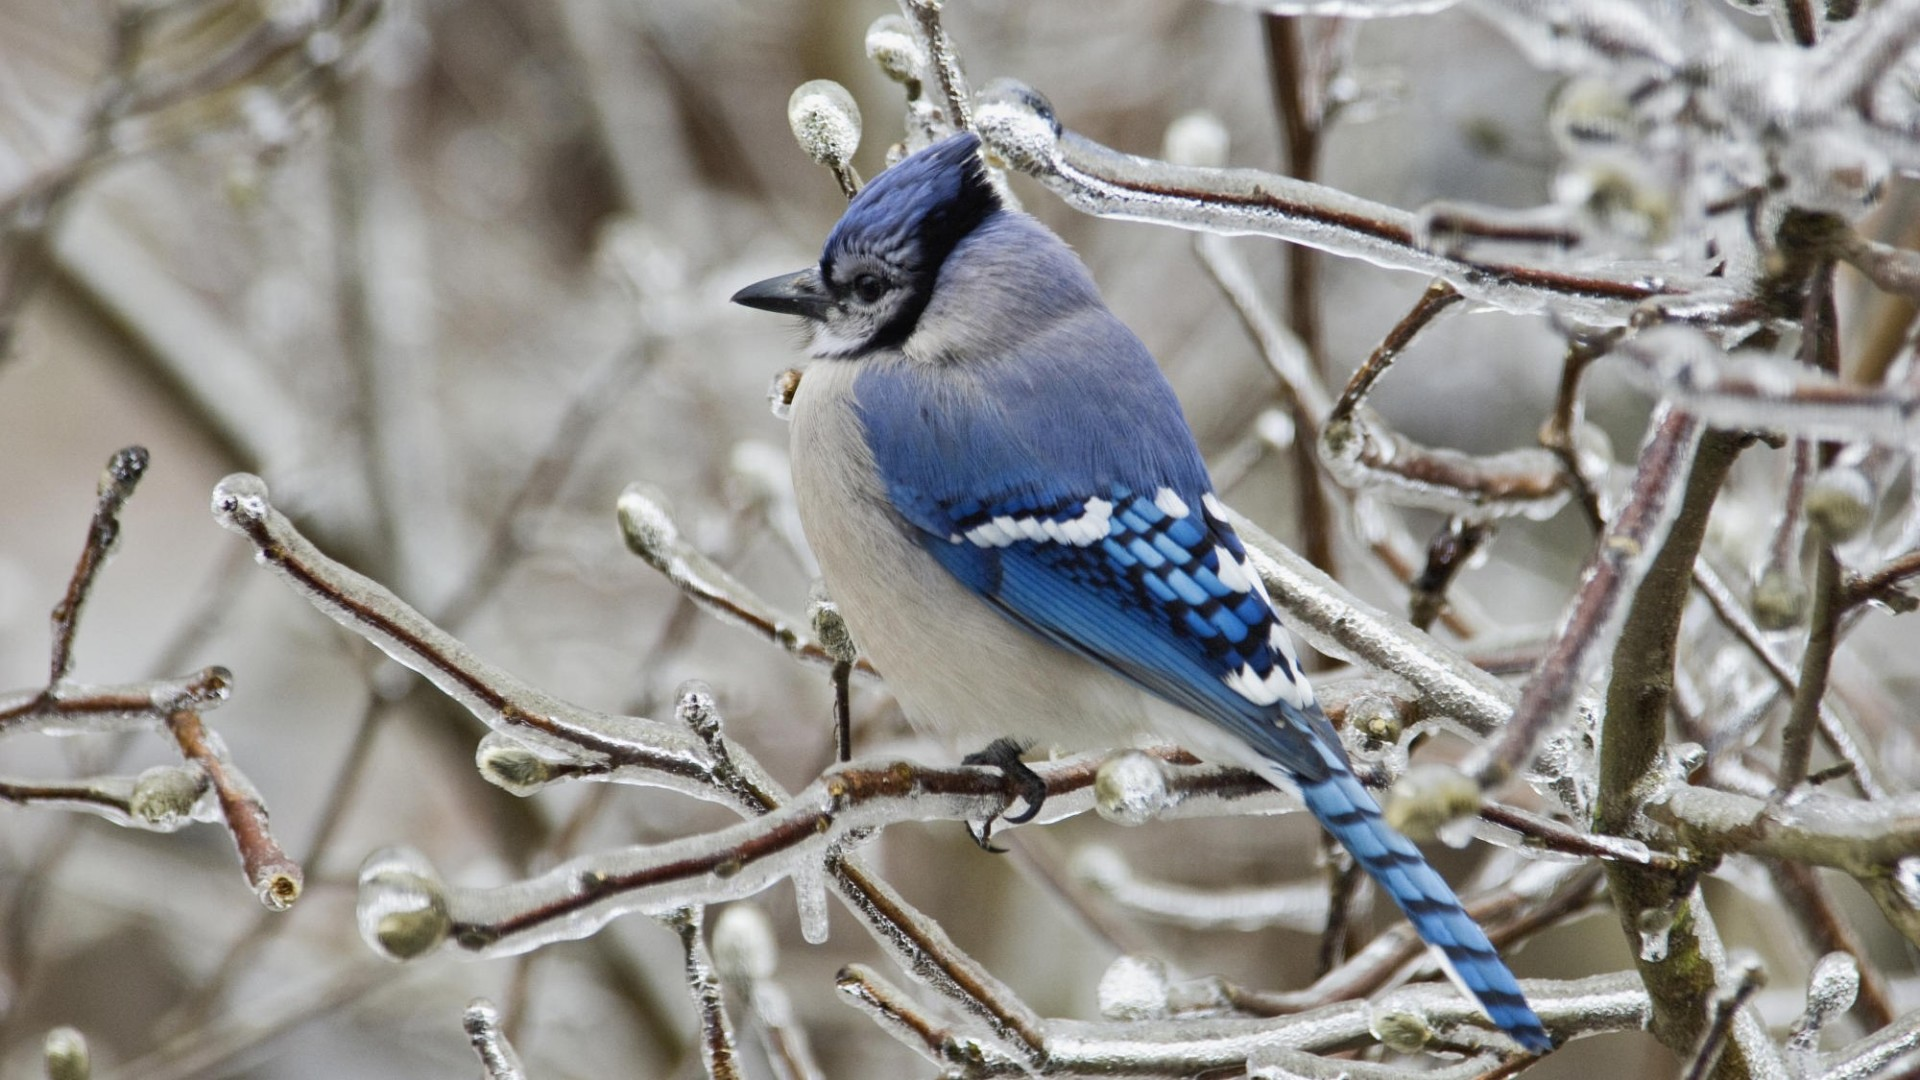 Wallpapers cataloguecom   Blue Jay Bird in 1920x1080 resolution 1920x1080